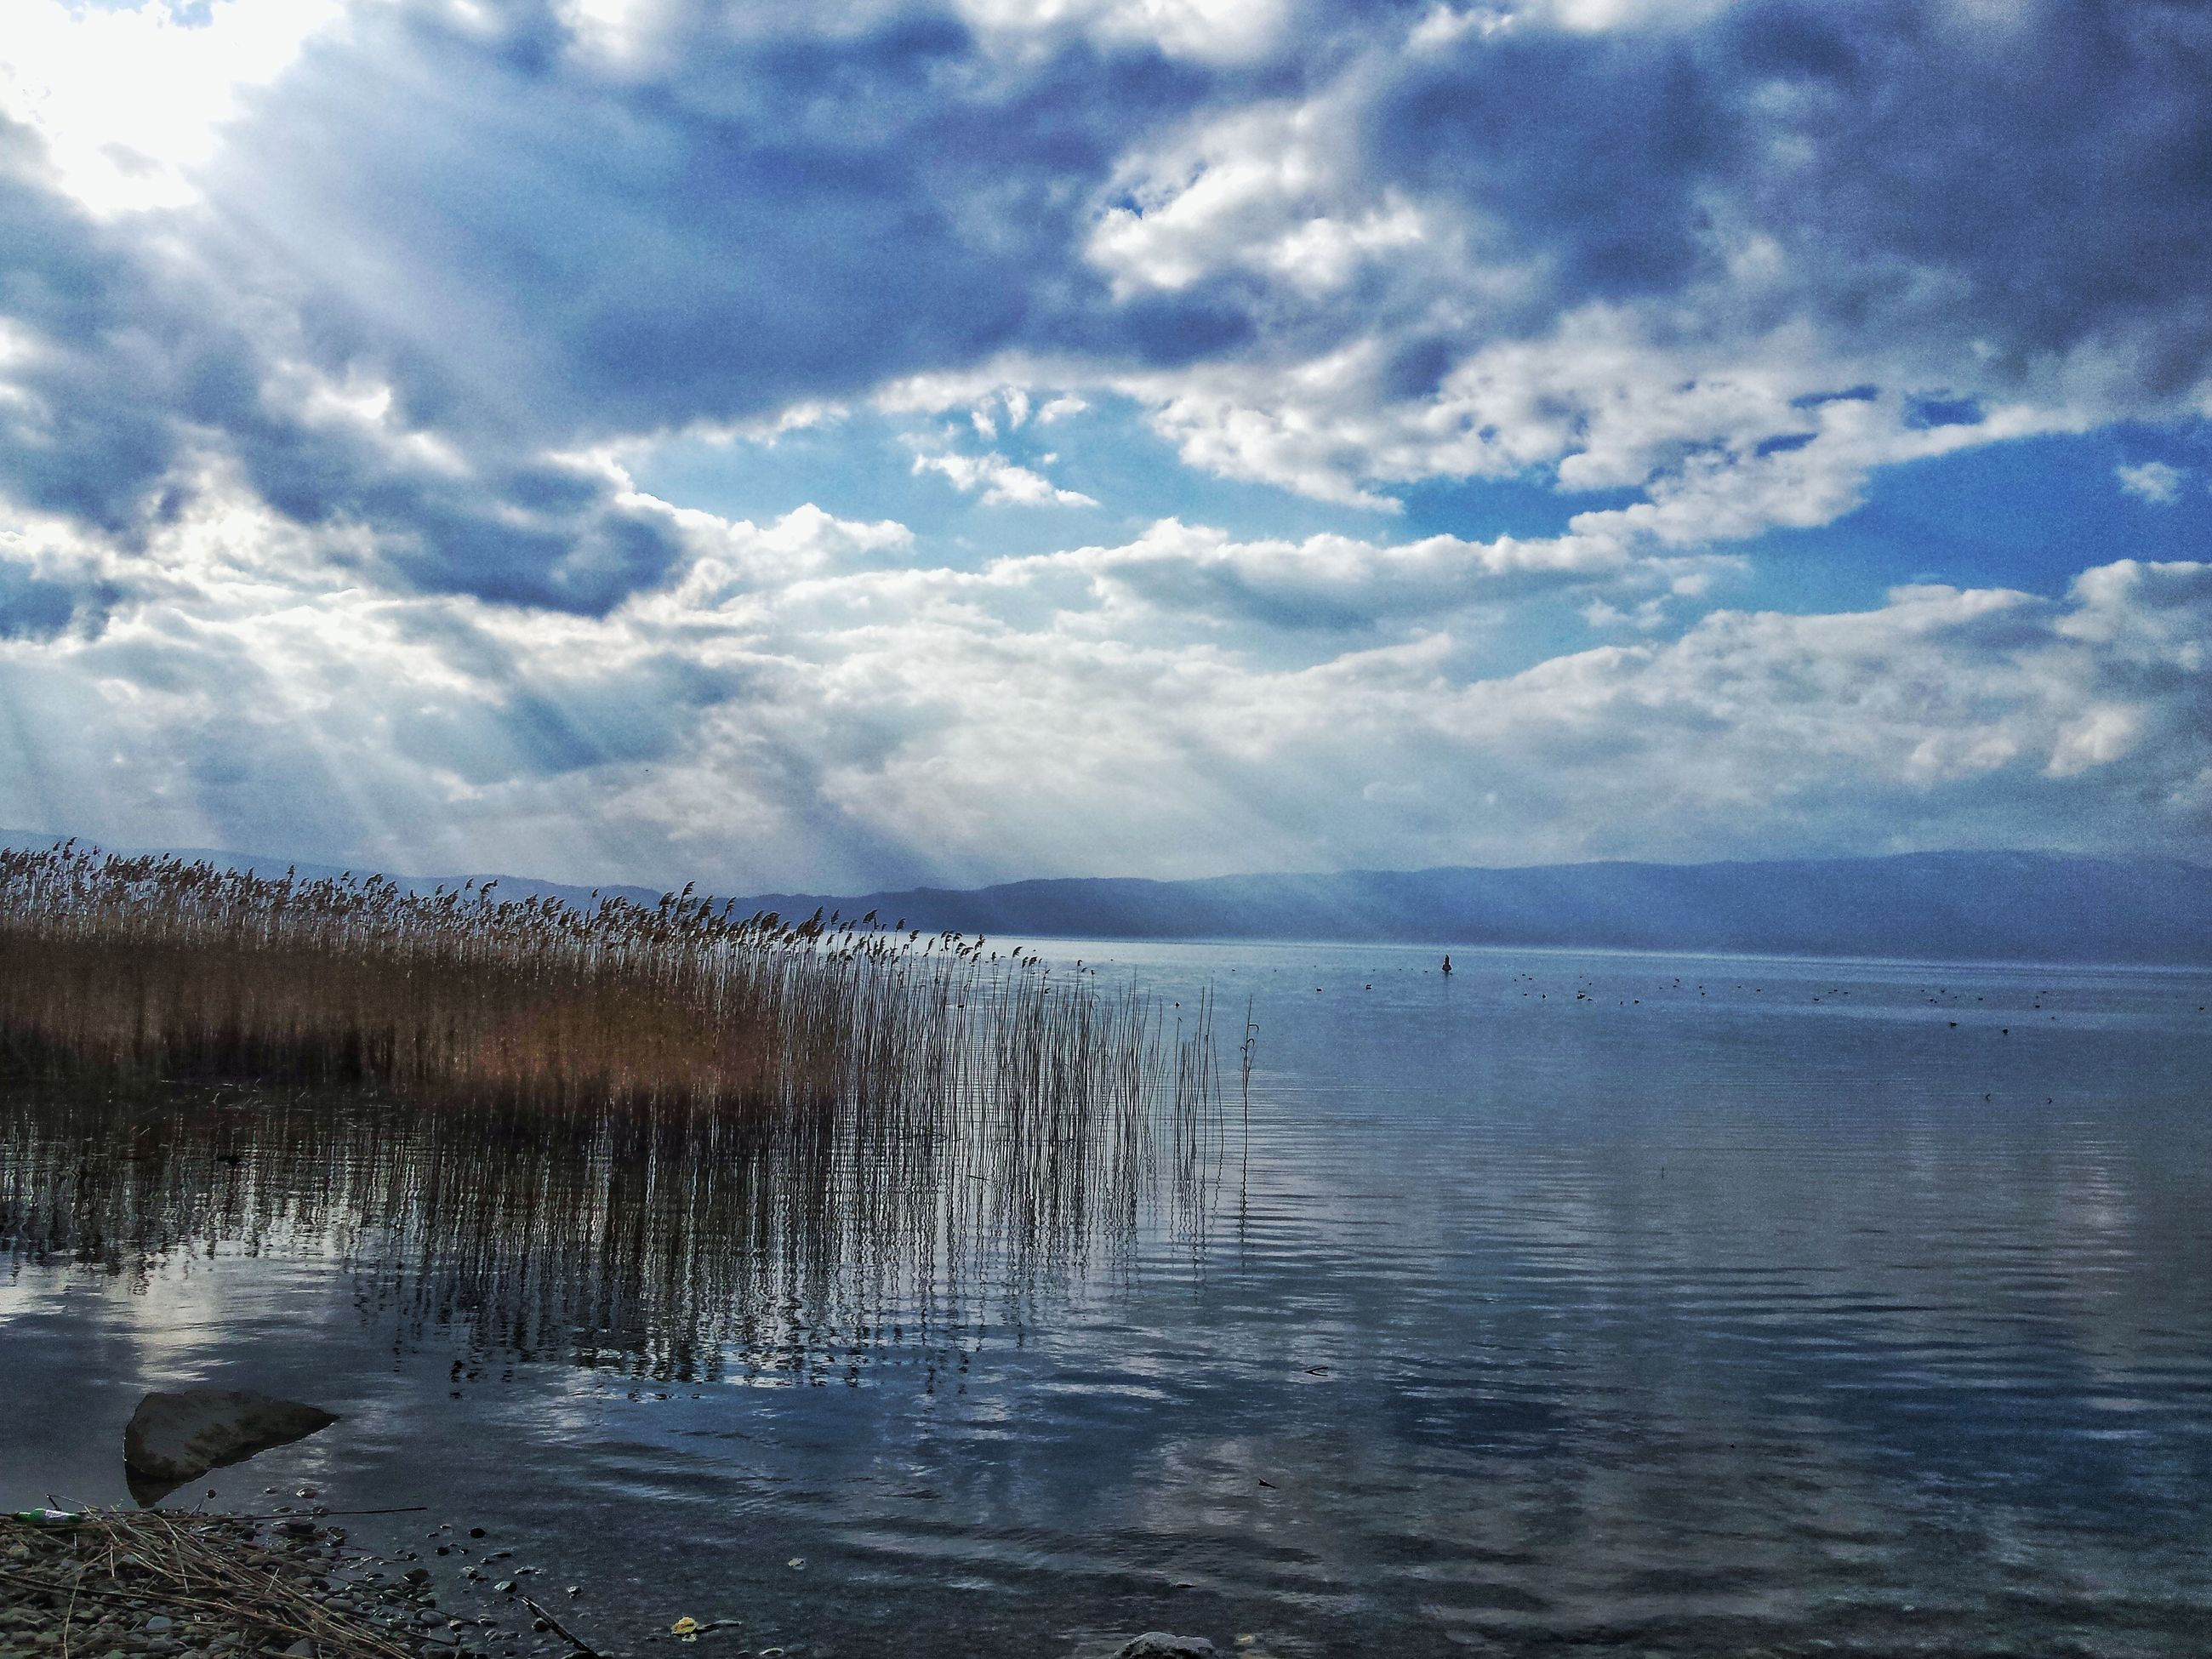 sky, cloud - sky, tranquility, water, nature, beauty in nature, tranquil scene, scenics, sea, no people, non-urban scene, idyllic, outdoors, day, tree, horizon over water